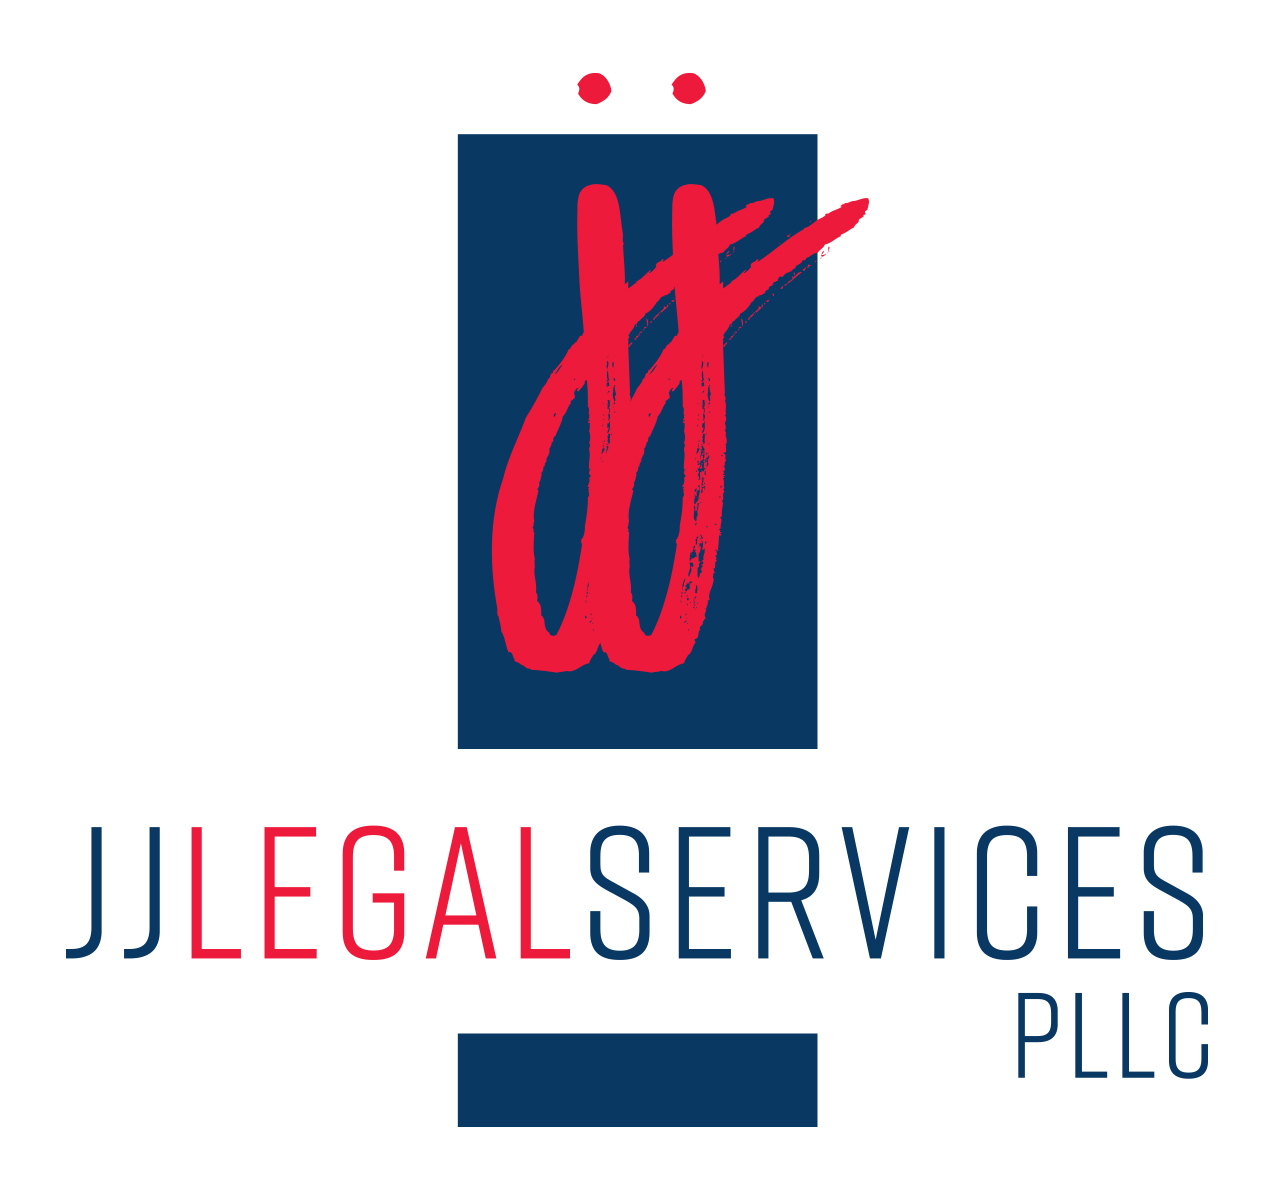 JJ Legal Services, PLLC